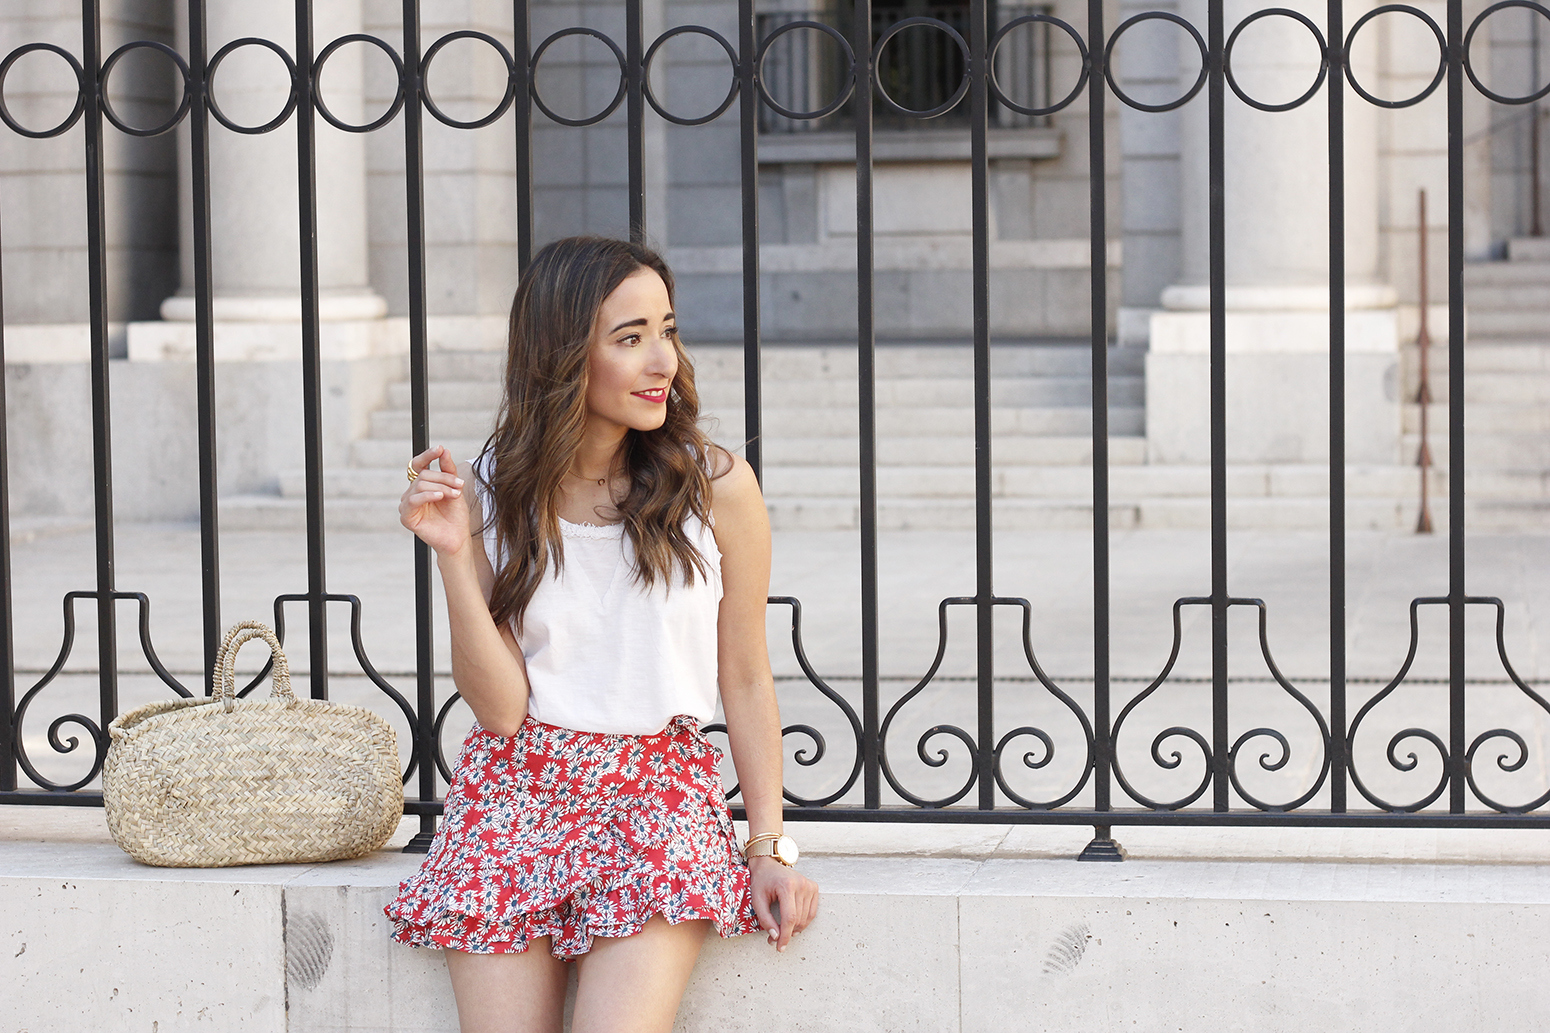 Velvet sandals floral skirt summer outfit style fashion09